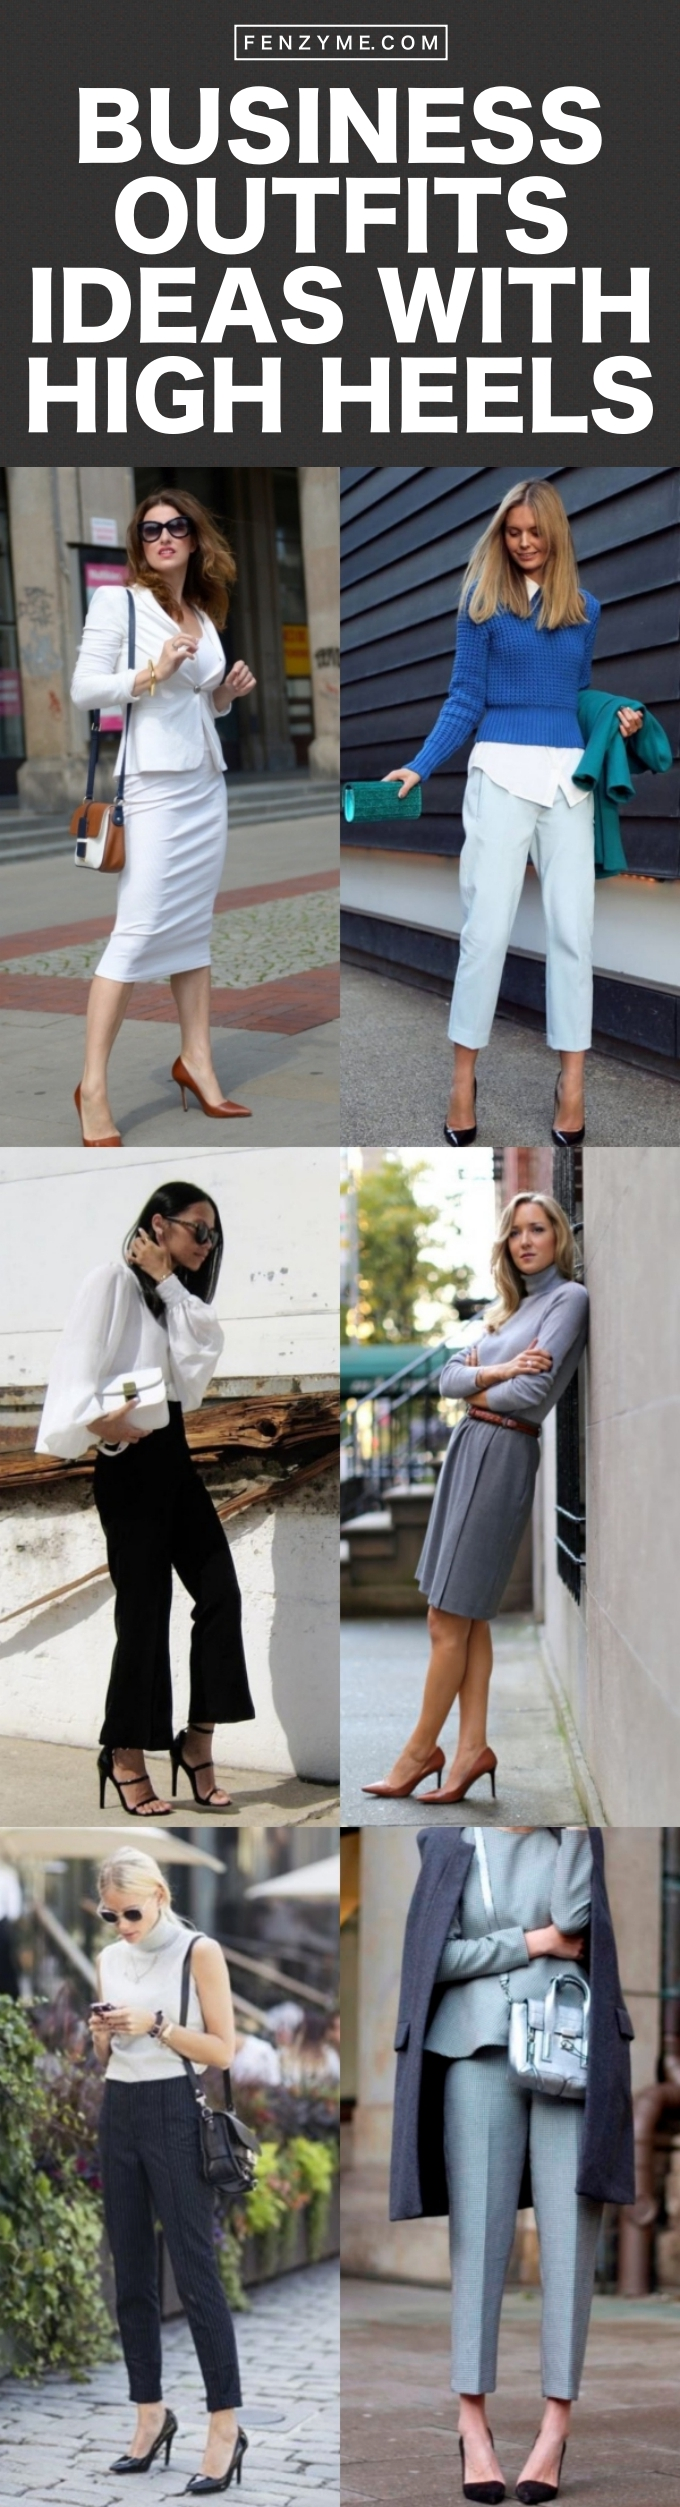 Business Outfits Ideas with High Heels